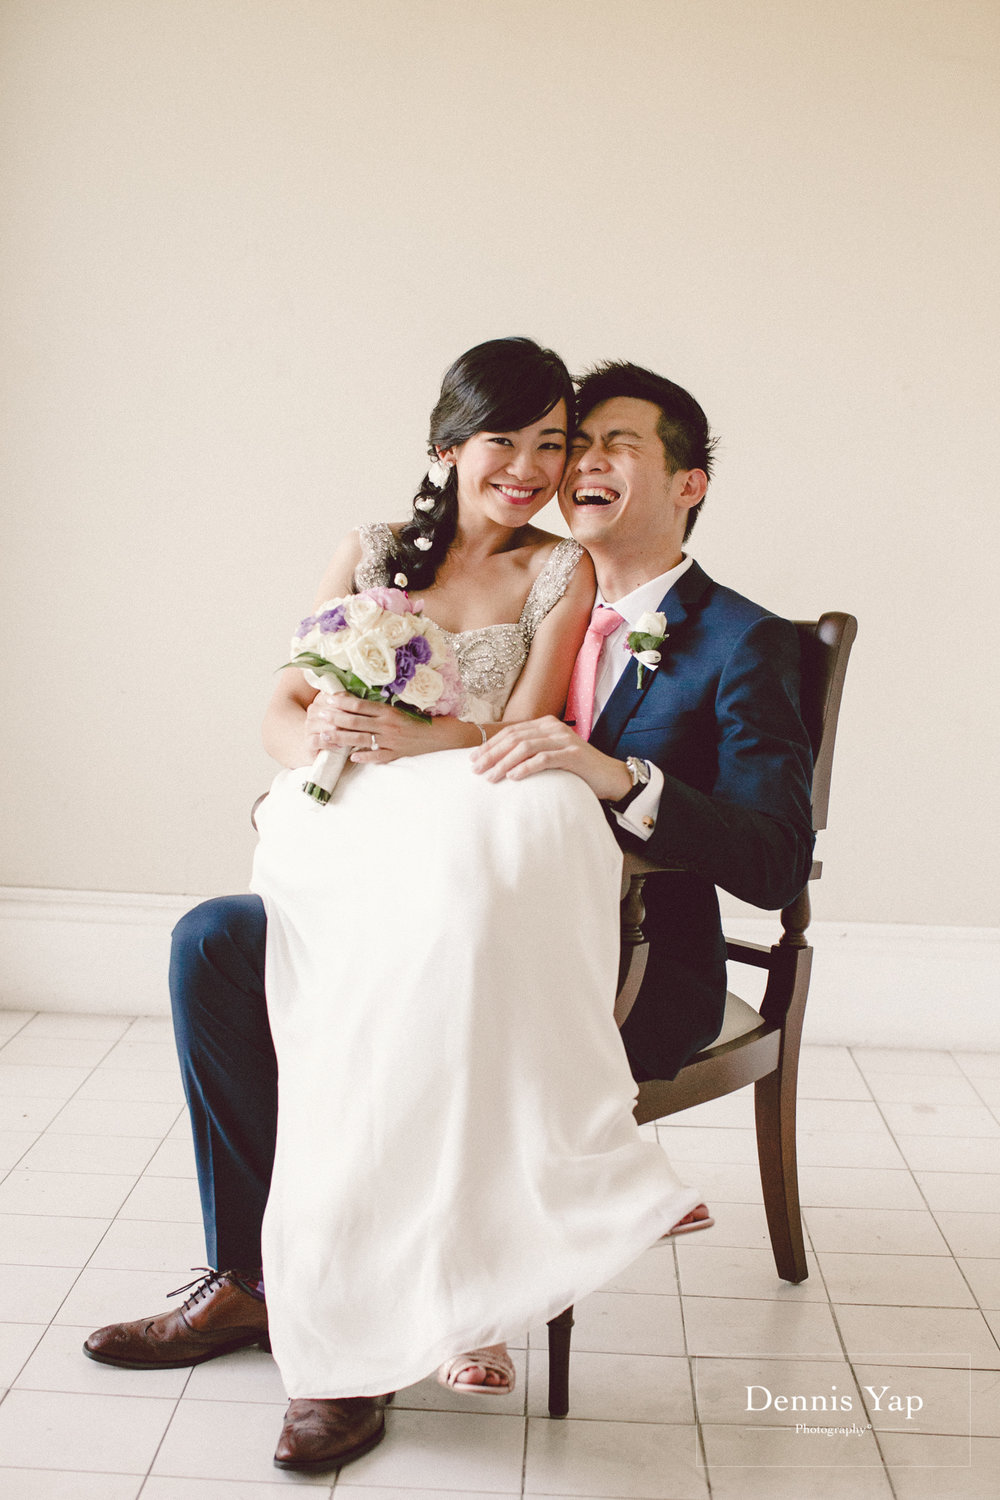 yijun rachel wedding morning ceremony carcosa seri negara malaysia wedding photographer dennis yap gate crash love emotion tears-23.jpg